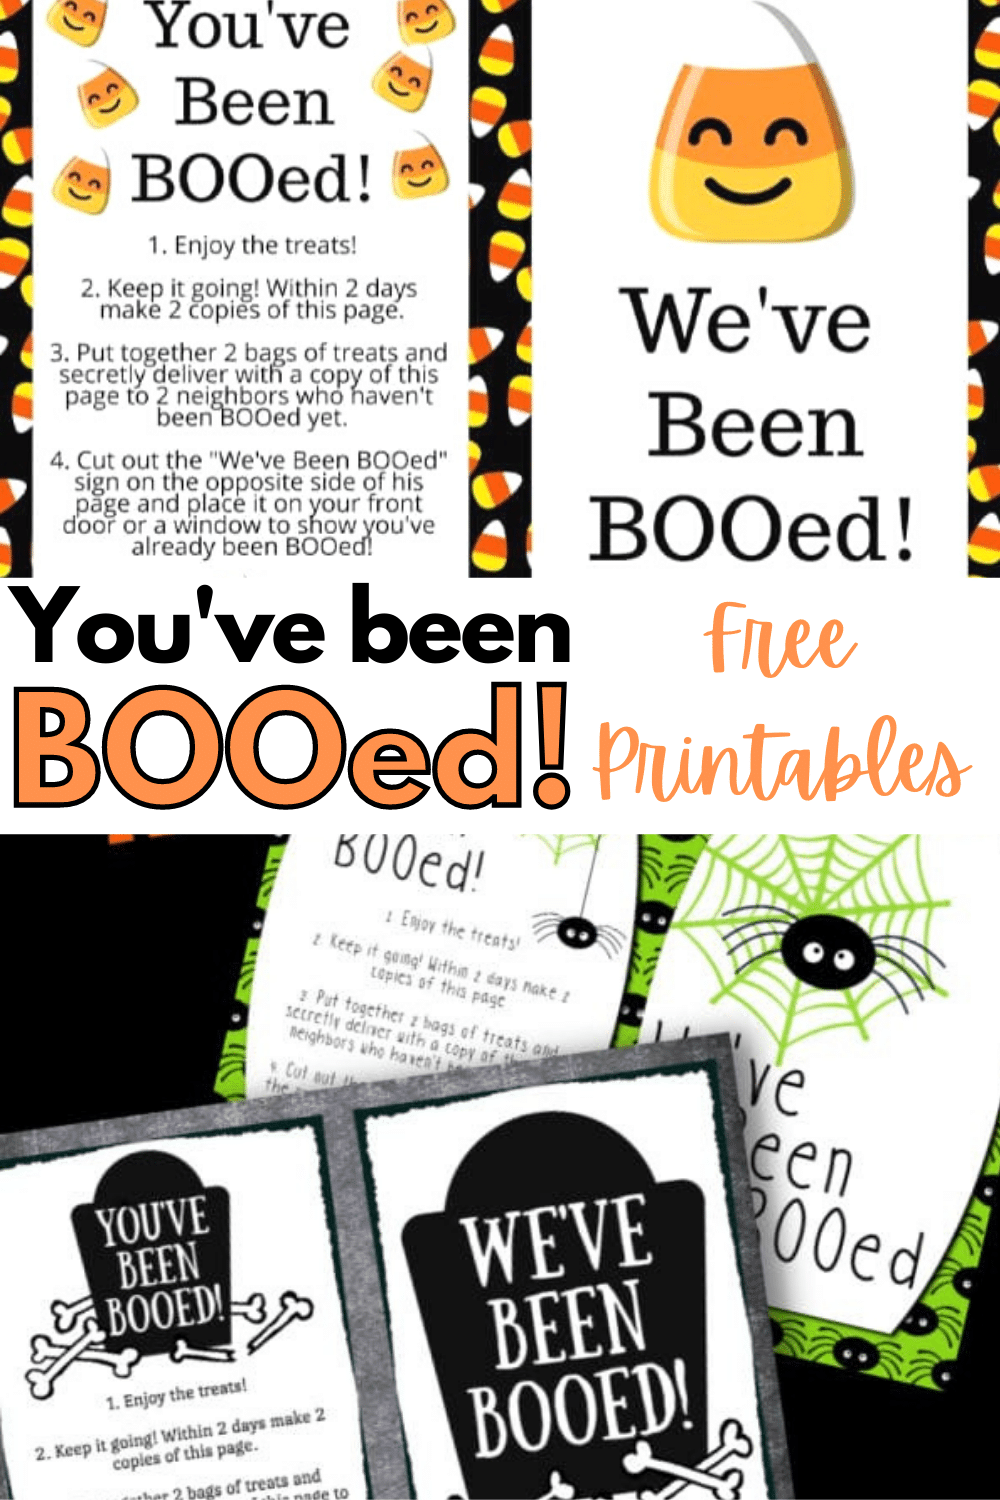 Three different You've Been BOOed printables to make Halloween extra special this year. A fun way to spread Halloween cheer around your area. #halloween #printables #youvebeenbooed via @wondermomwannab